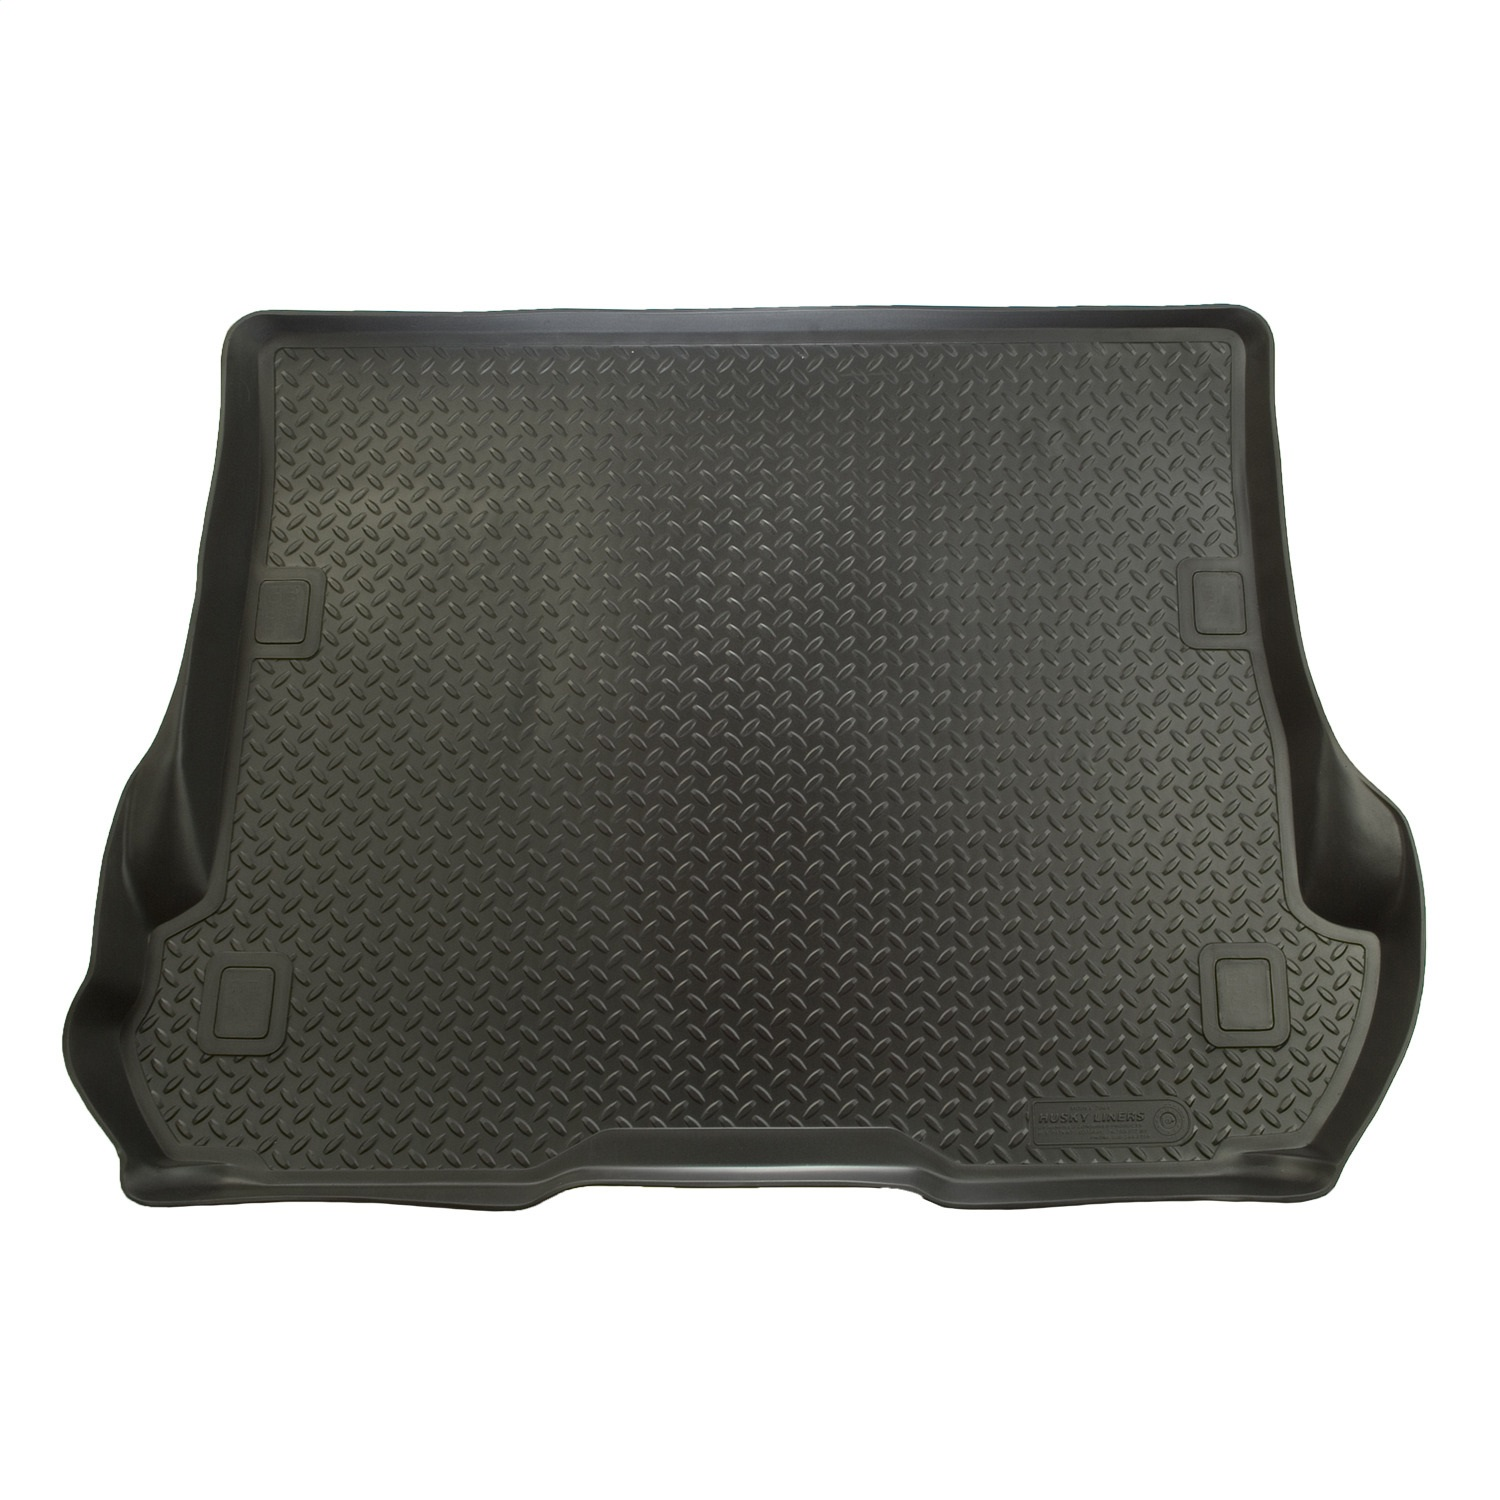 Husky Liners 25101 Classic Style Cargo Liner Fits 96-02 4Runner